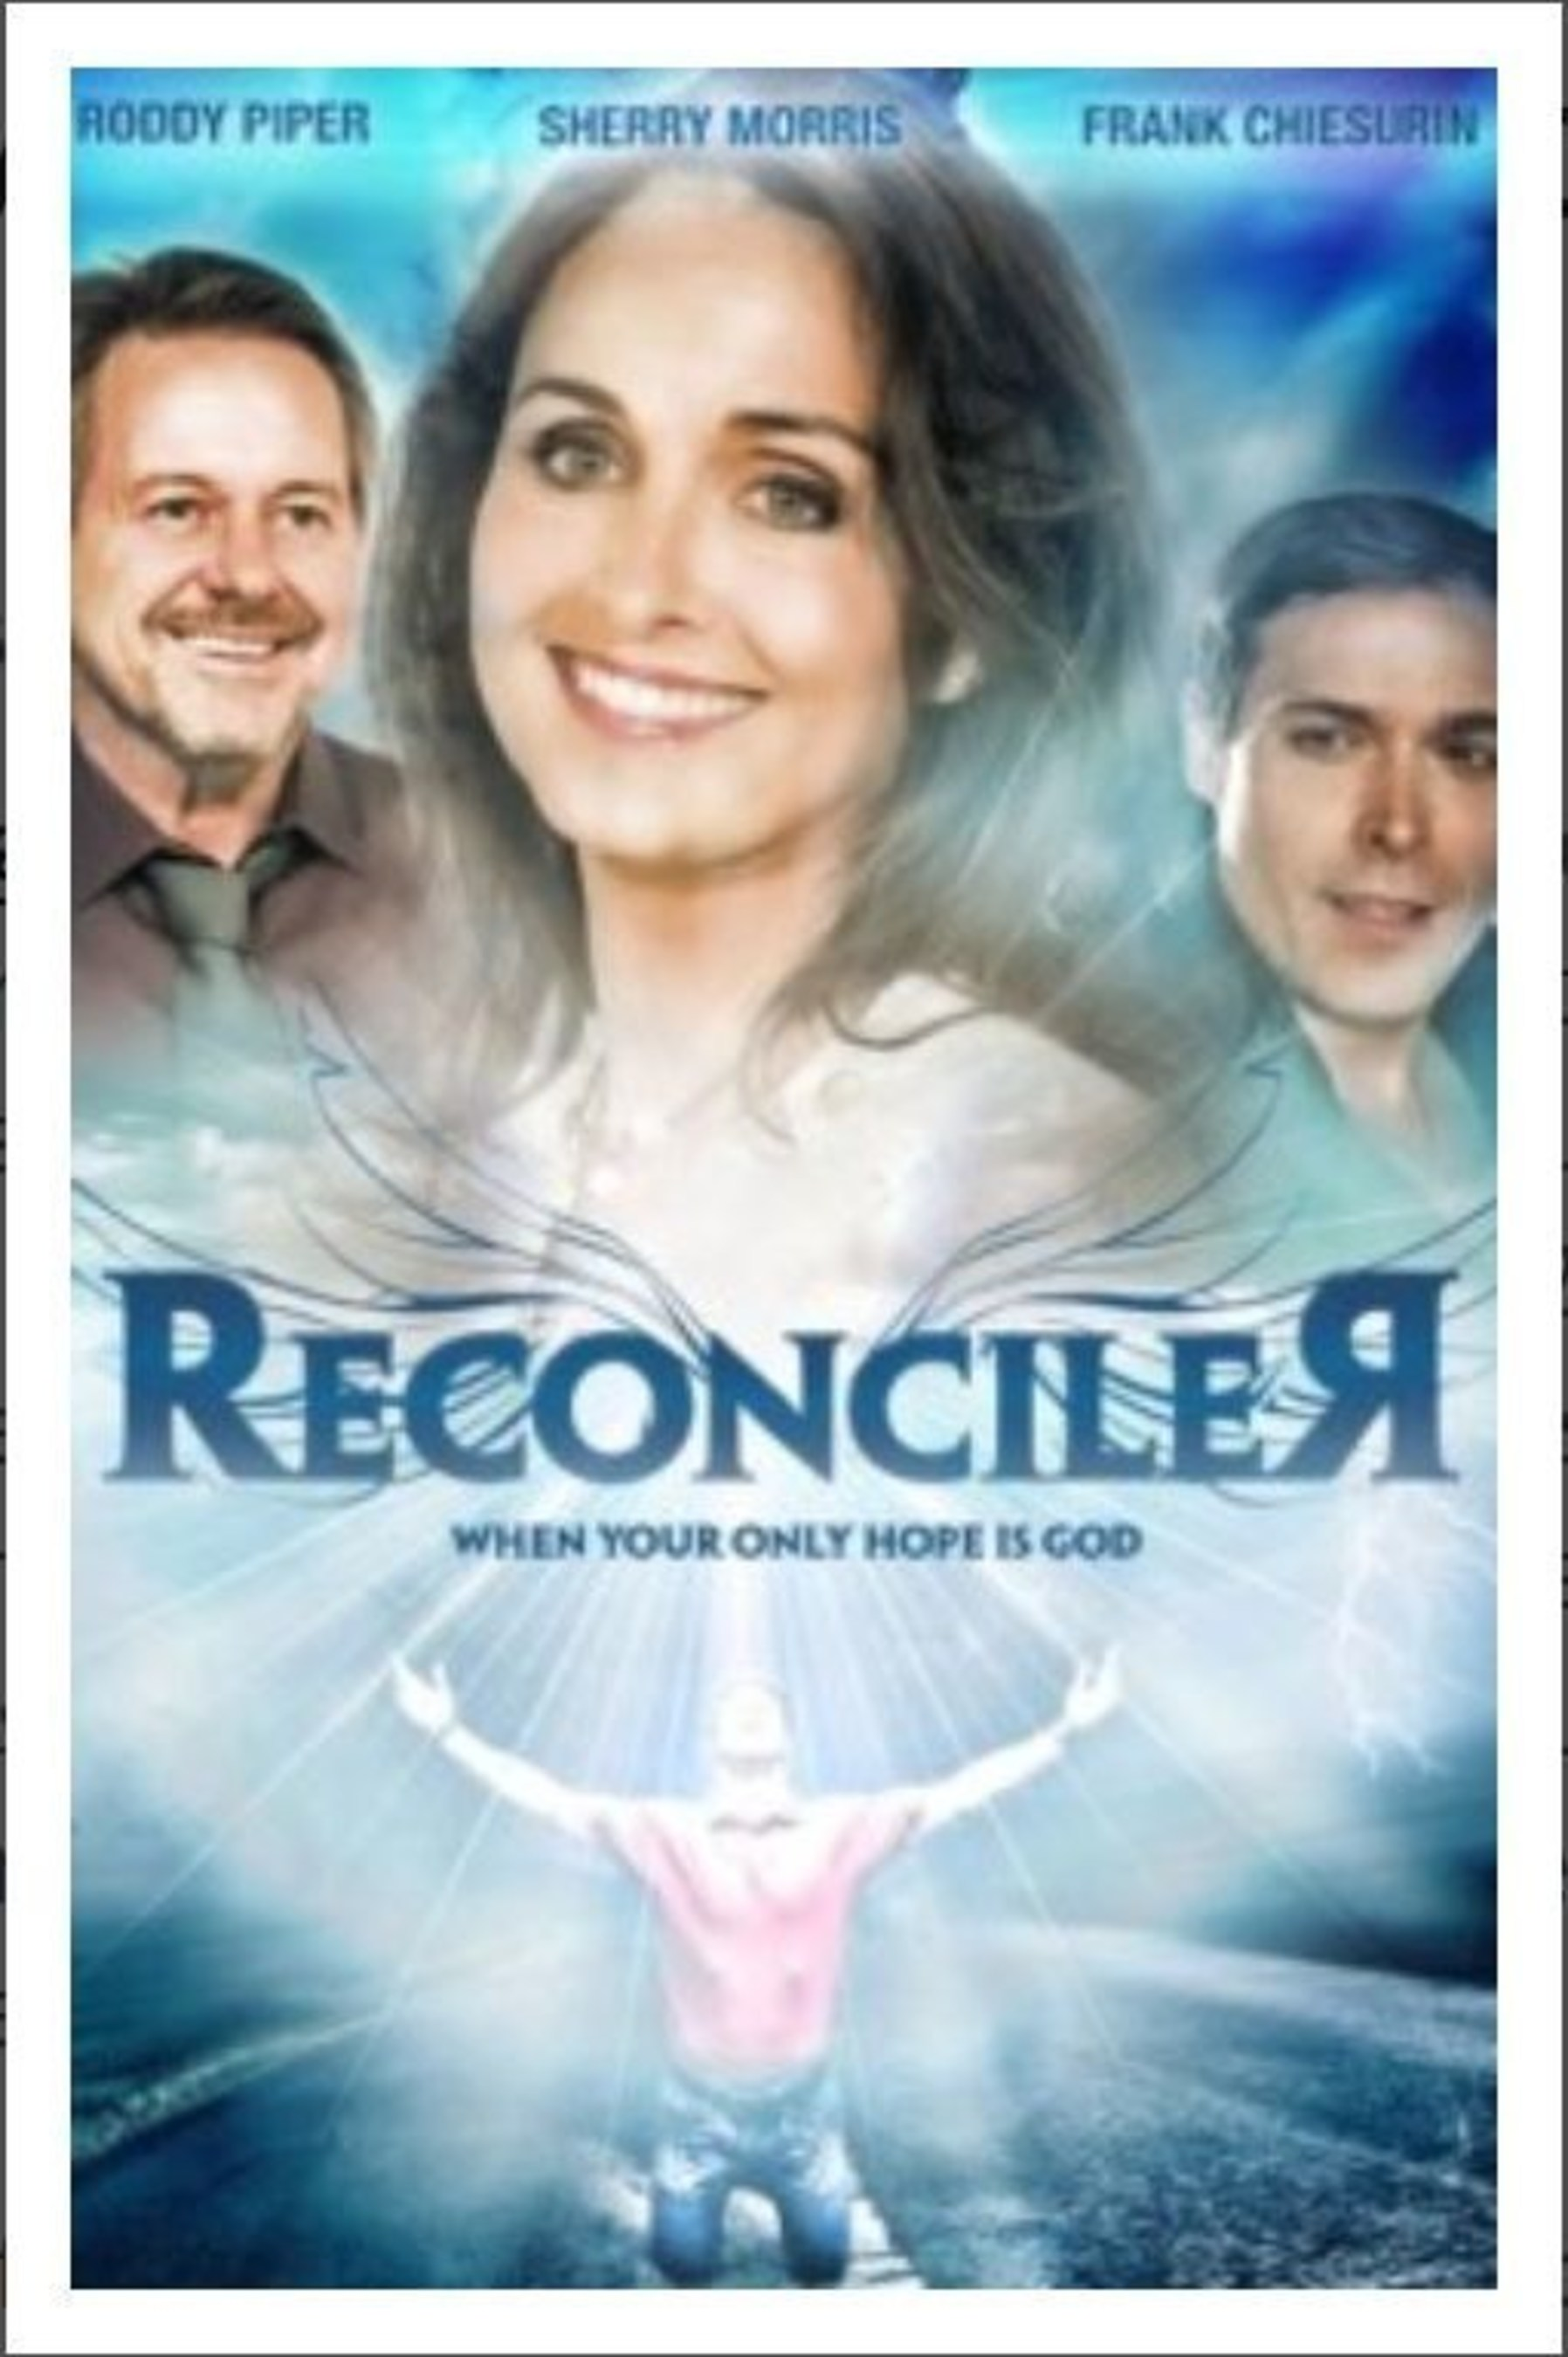 'The Reconciler' Movie Pays Tribute to the Late WWE Legend Roddy Piper